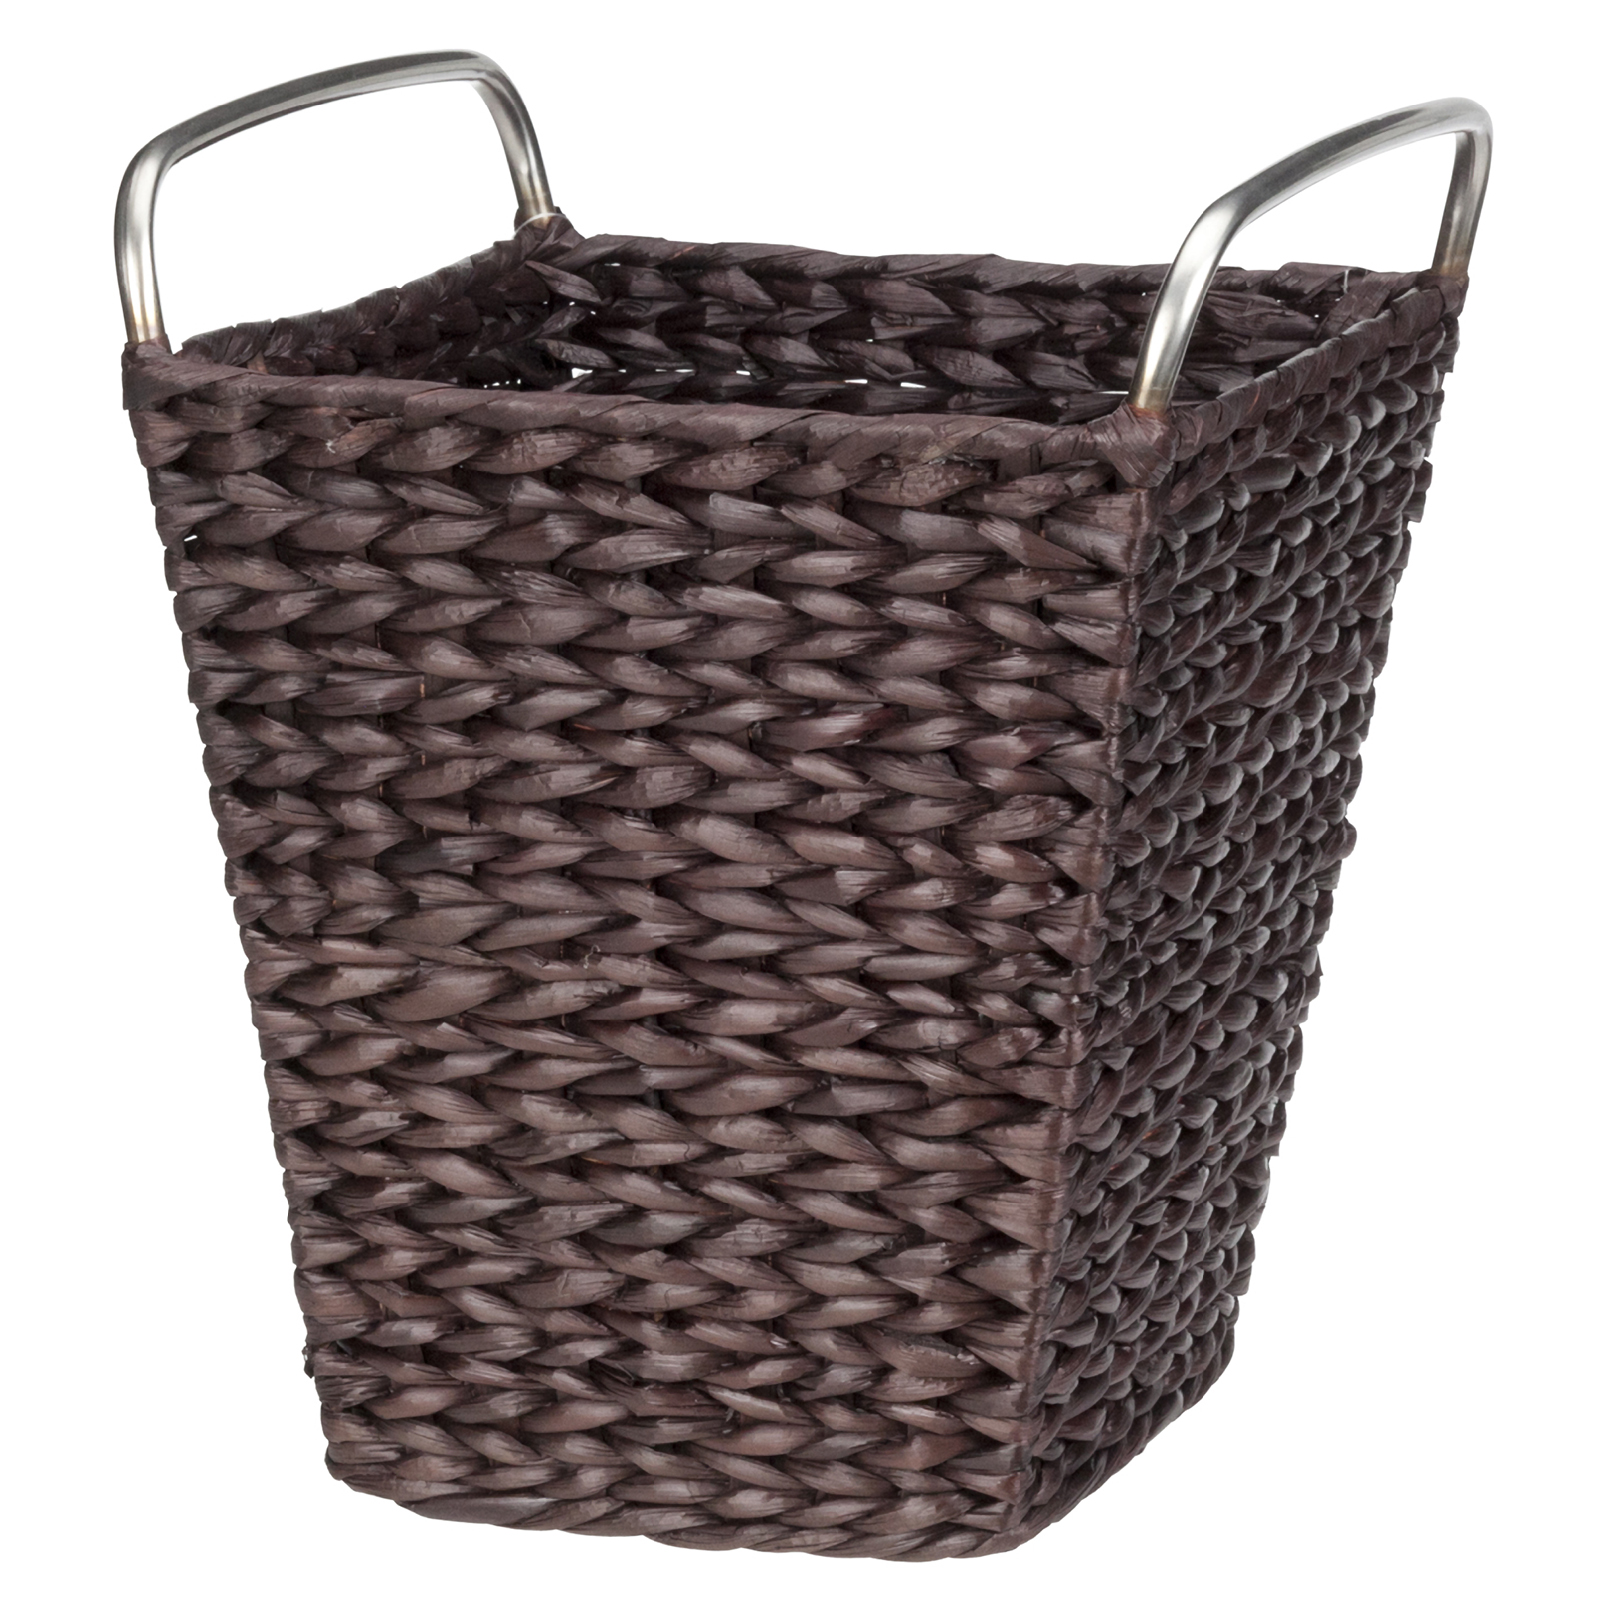 Decorative Metal Waste Baskets Creative Ware Home Metro Waste Basket Home Home Decor